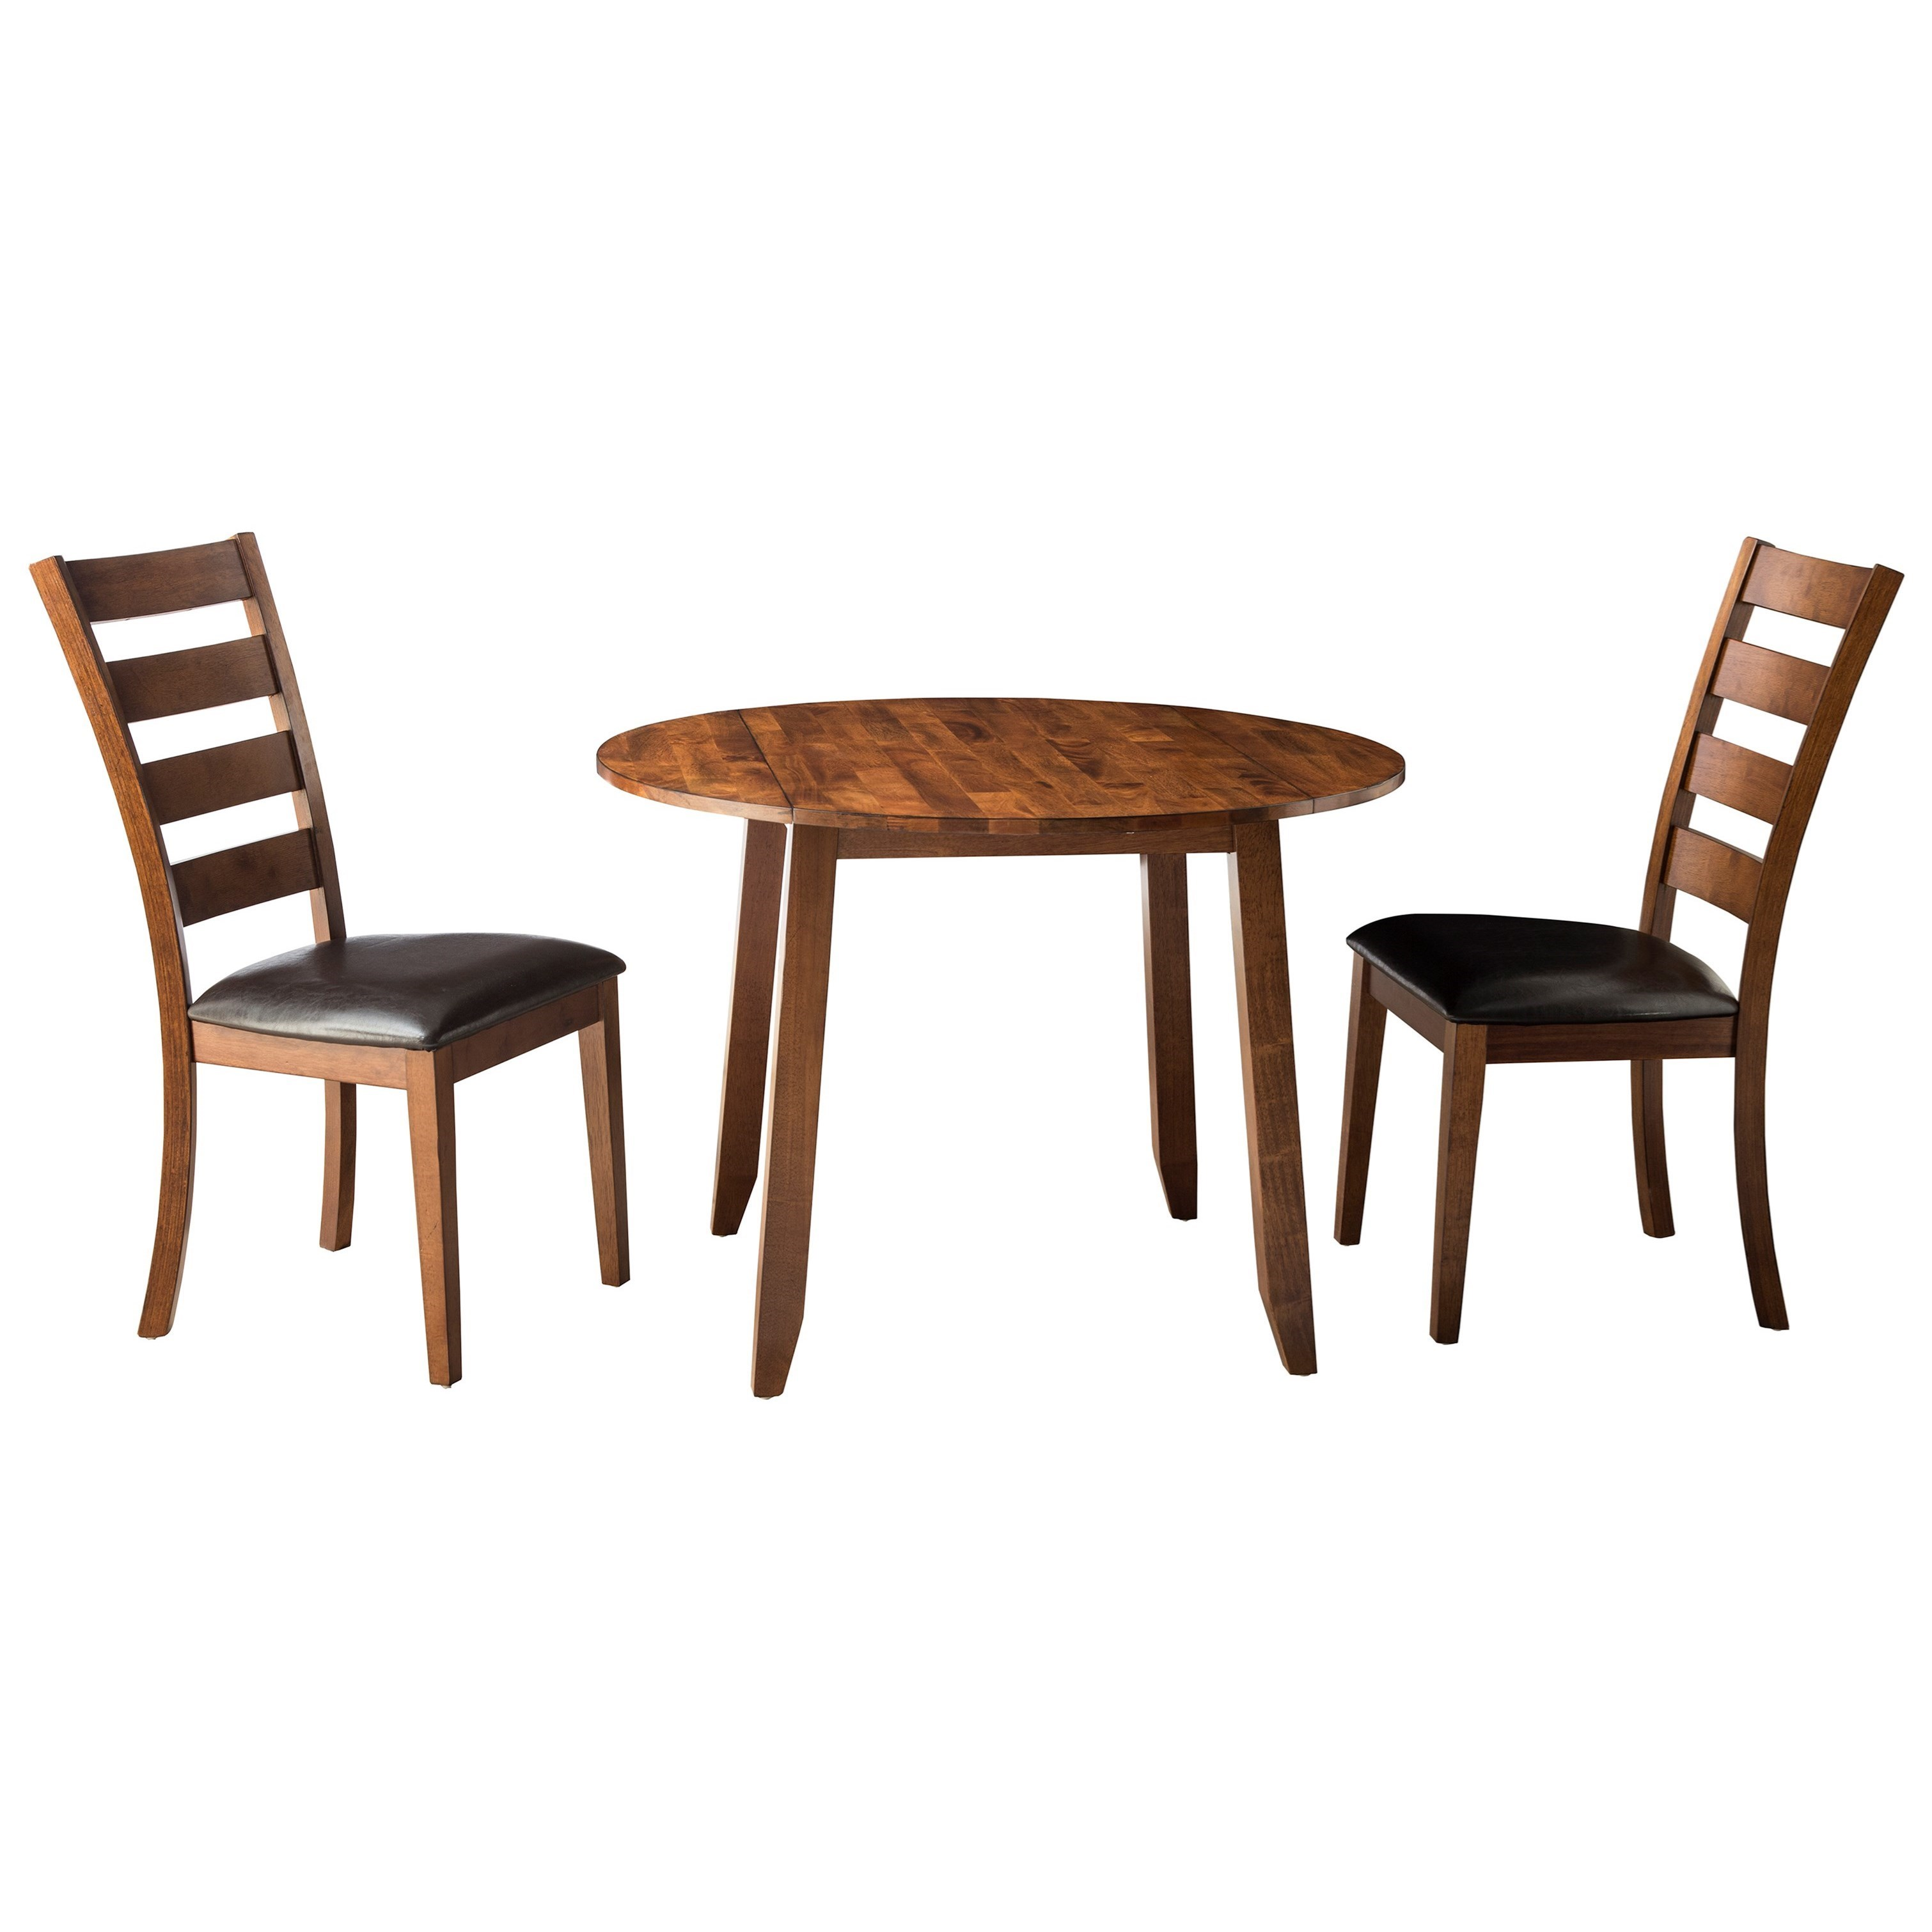 3 piece drop leaf dining set counter height vfm signature konadrop leaf dining table and chair set kona piece drop ladder back